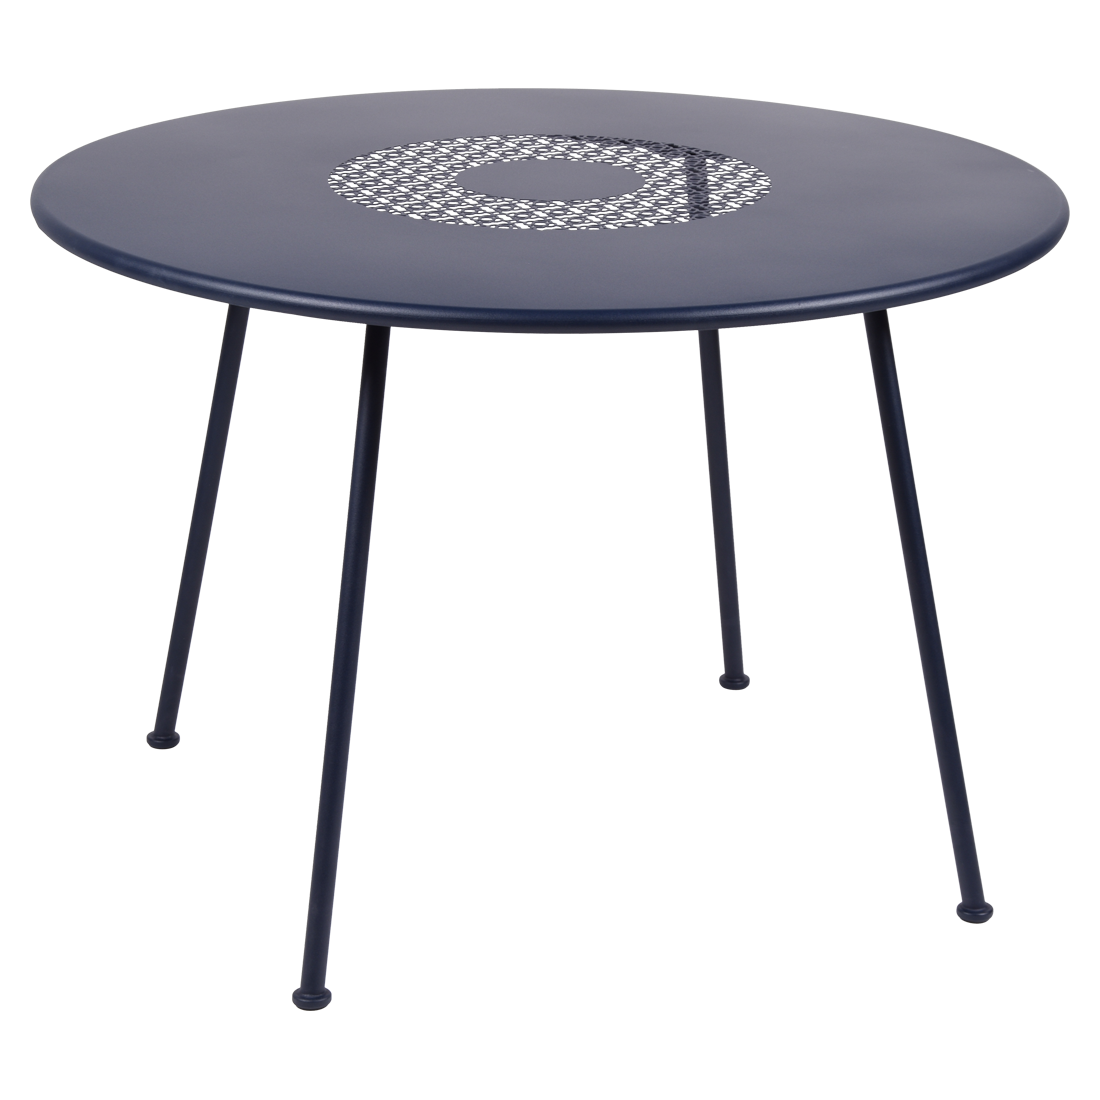 table ronde metal, table fermob, table ronde fermob, table lorette, table de jardin, table bleue